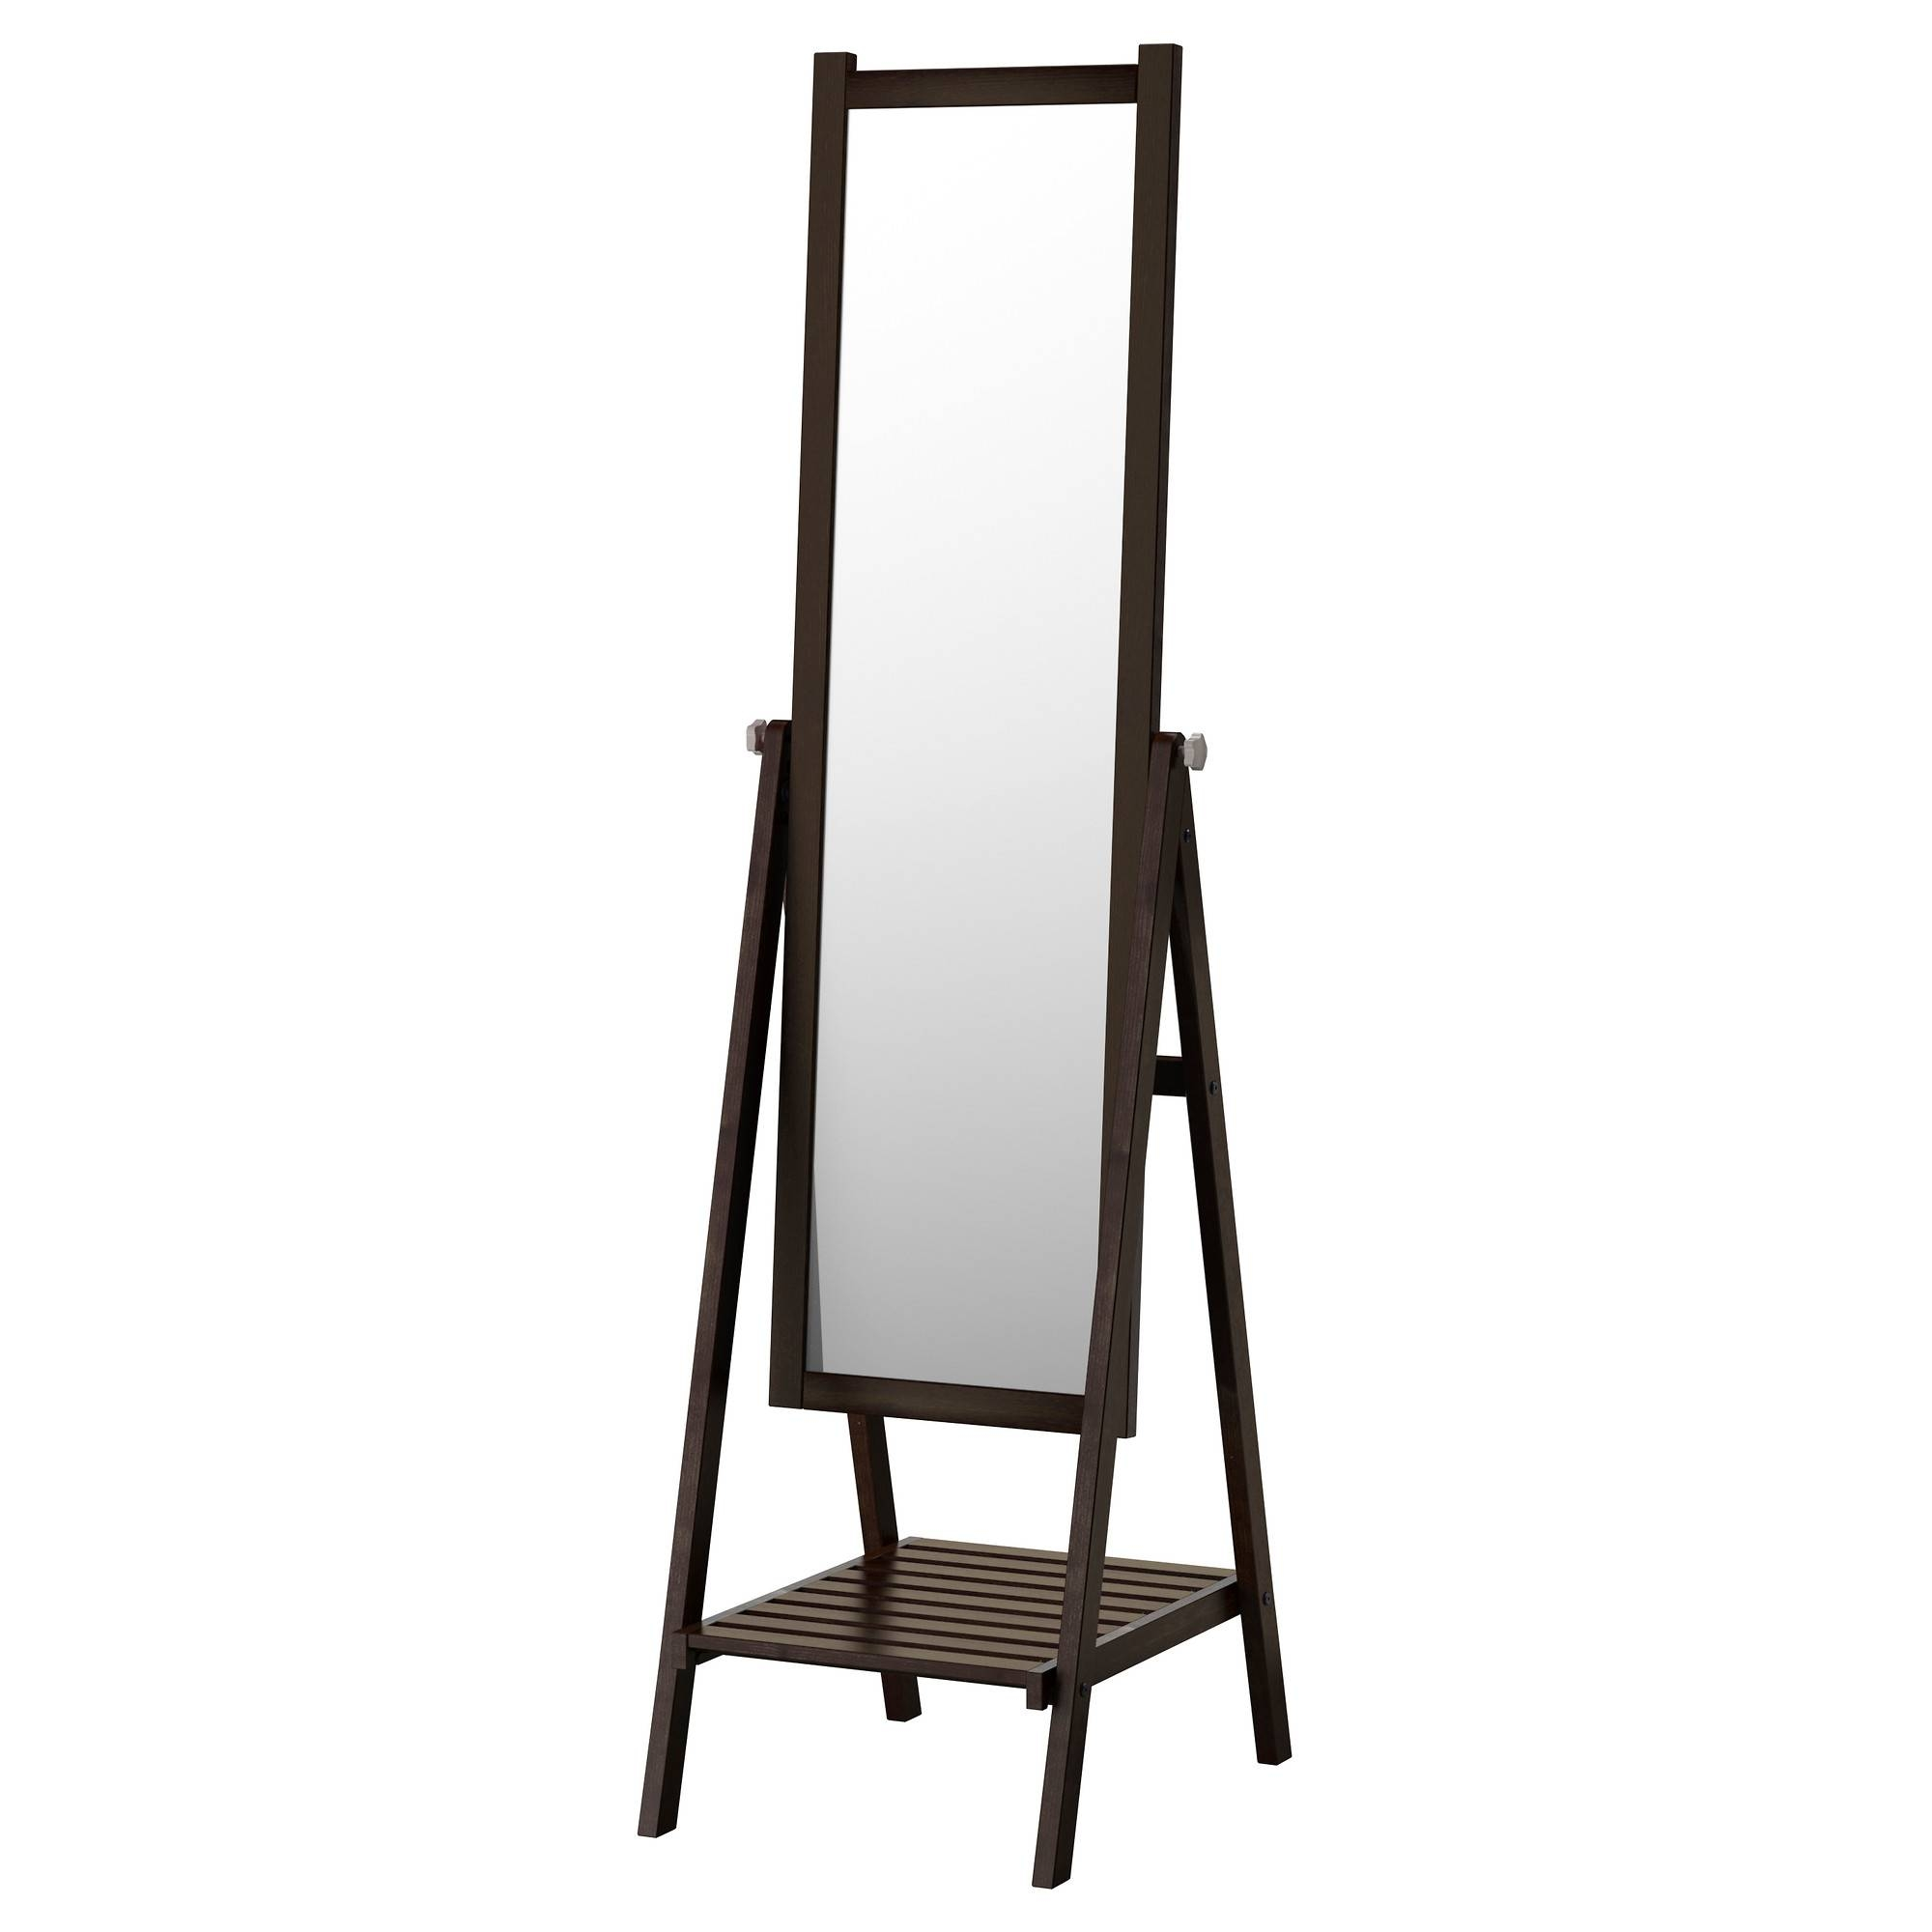 Isfjorden Standing Mirror Black-Brown Stain 47X182 Cm - Ikea with regard to Black Free Standing Mirrors (Image 10 of 15)